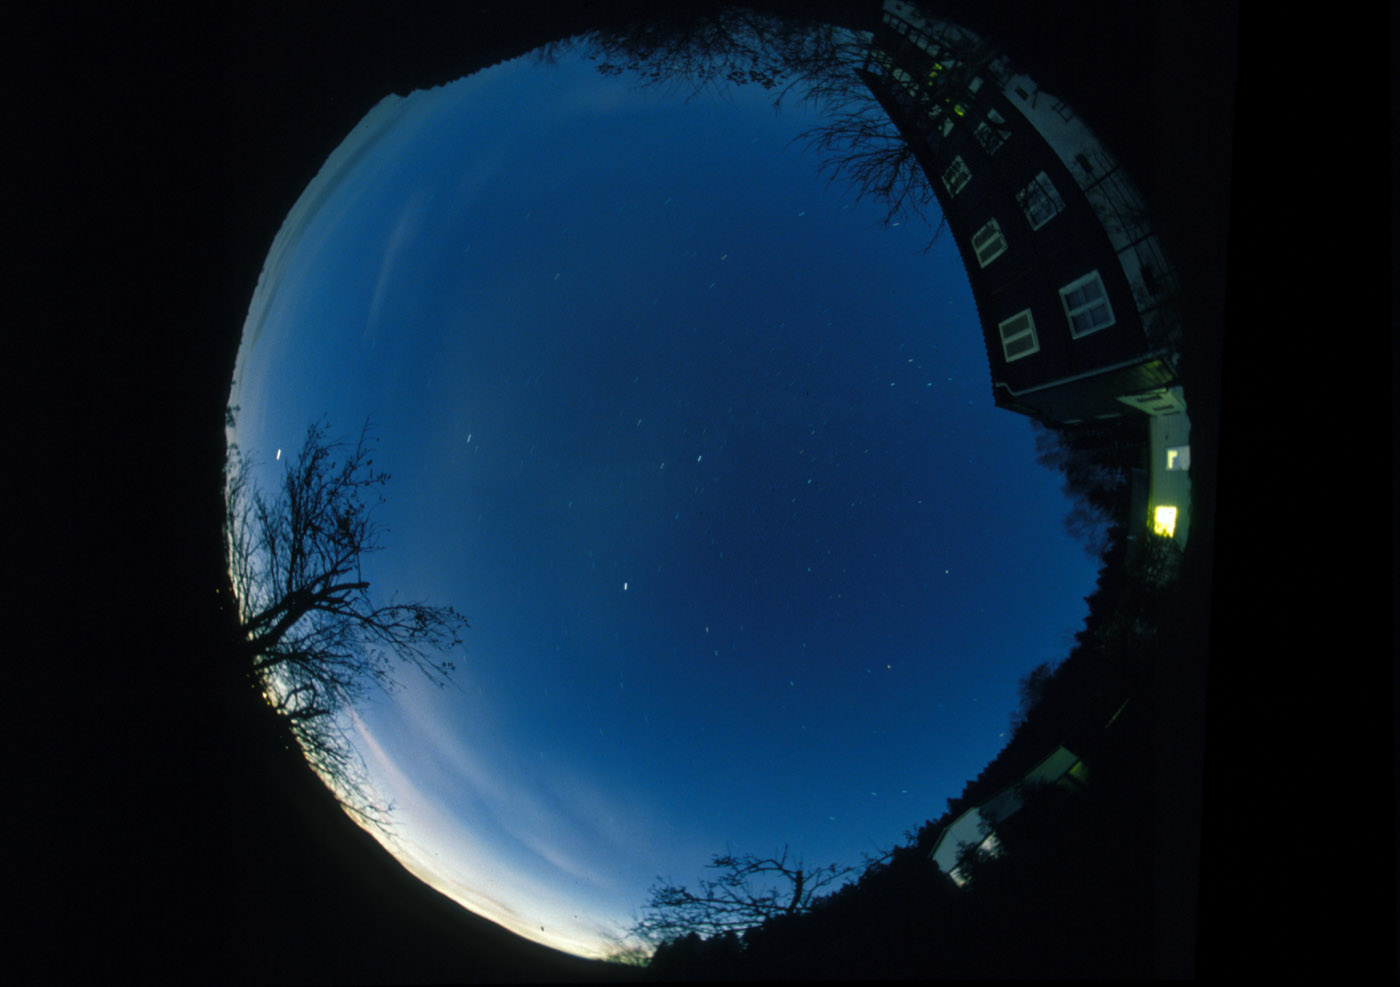 The twilight sky above the observatory